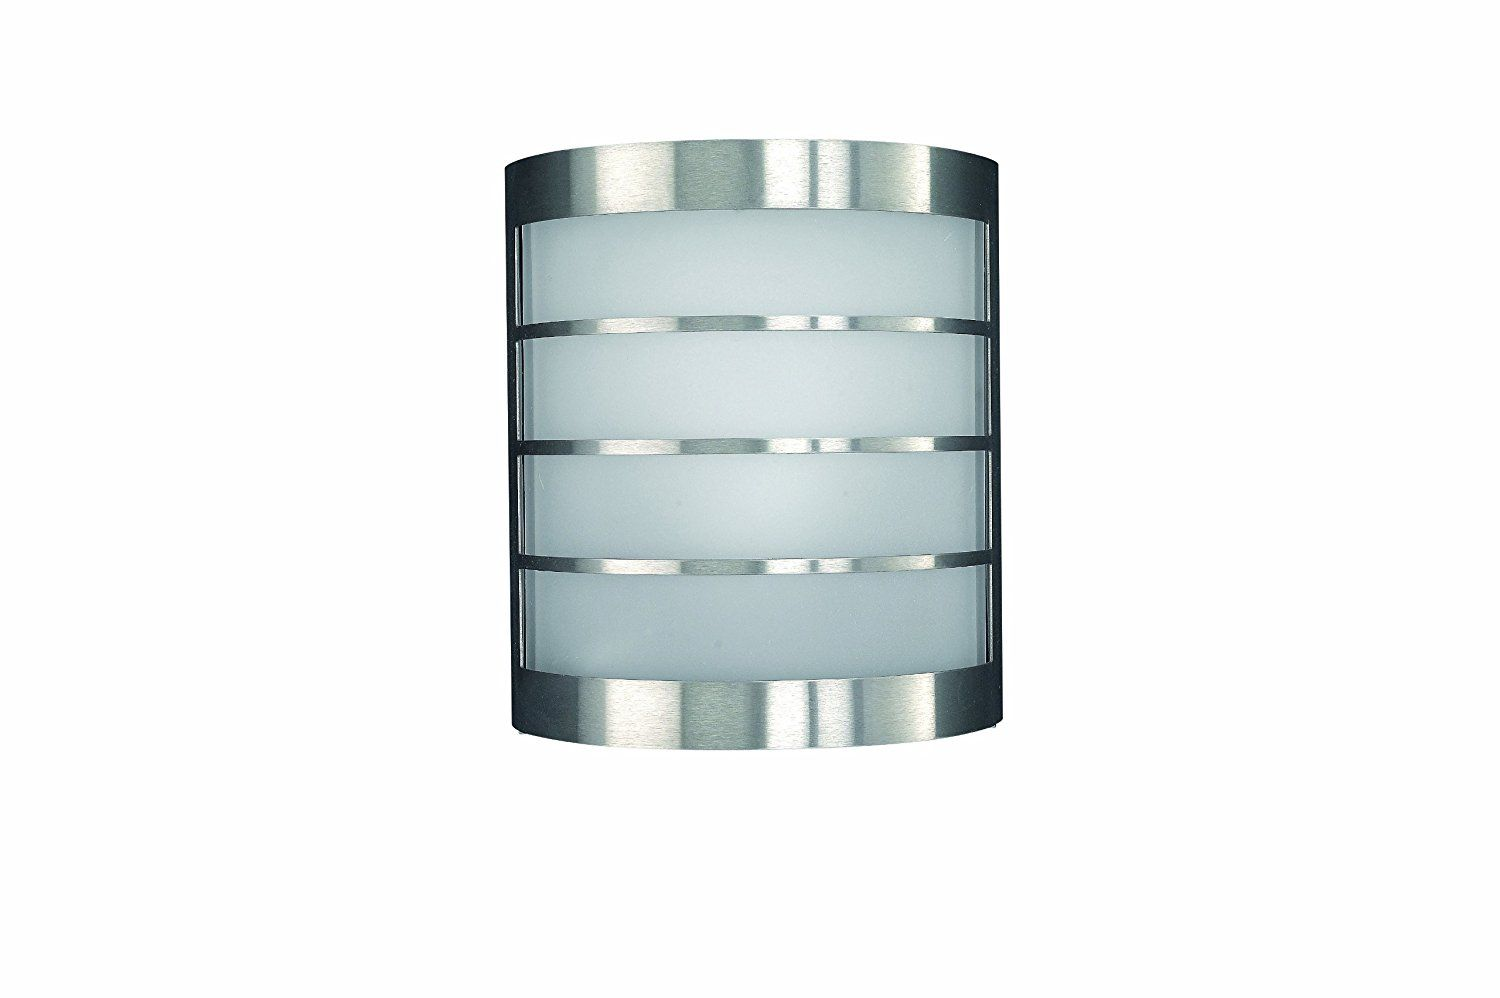 Massive calgary outdoor wall light stainless steel includes x